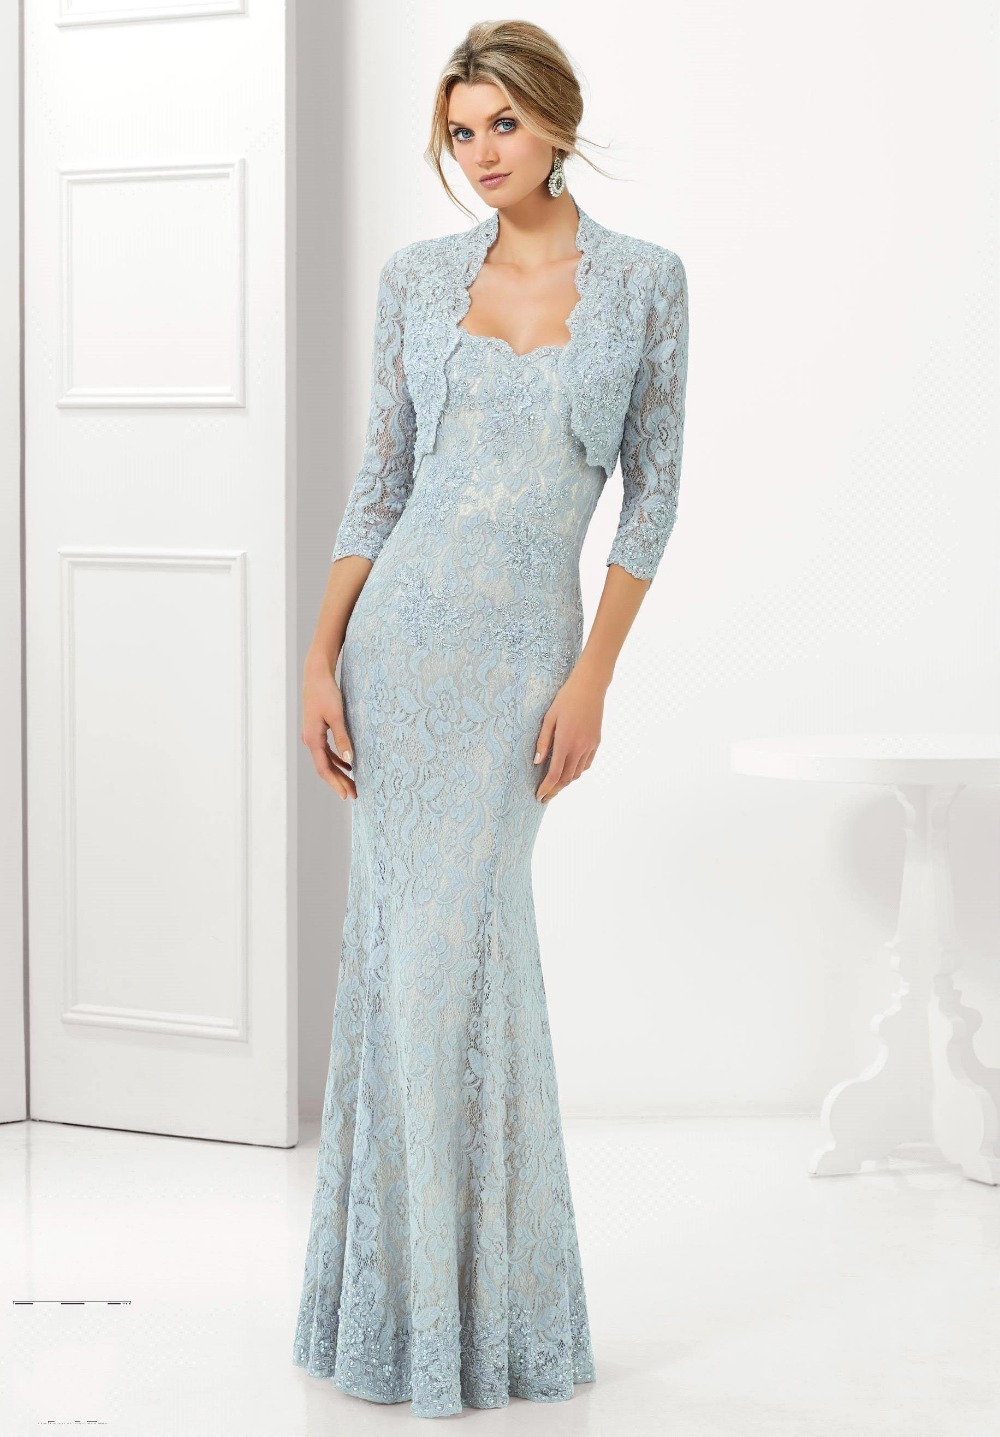 Beautiful Petite Size Mother Of The Bride Dresses Vignette - All ...